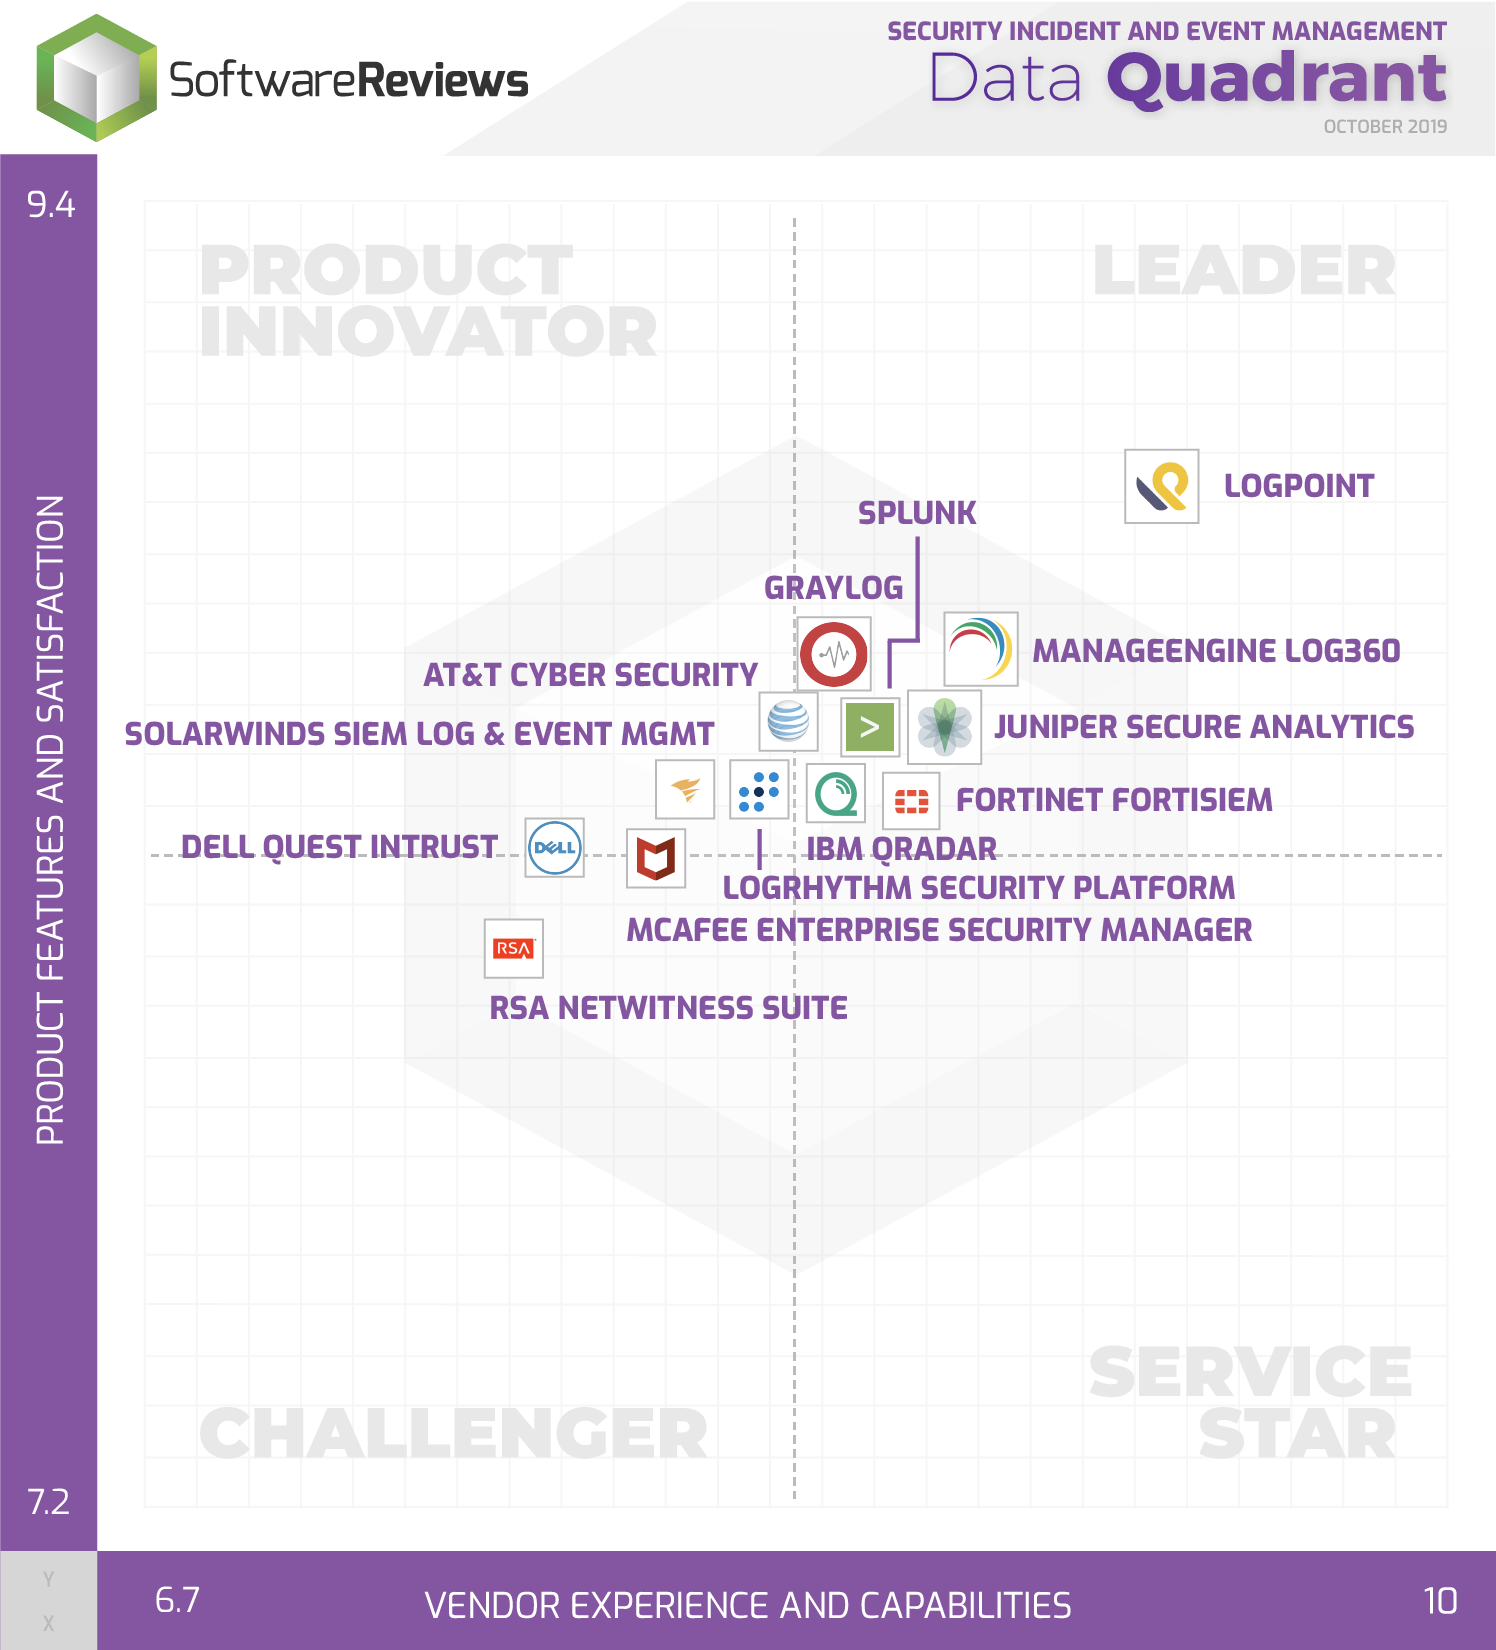 LogPoint Ranked #1 and Named Leader in the 2019  SoftwareReviews SIEM Data Quadrant